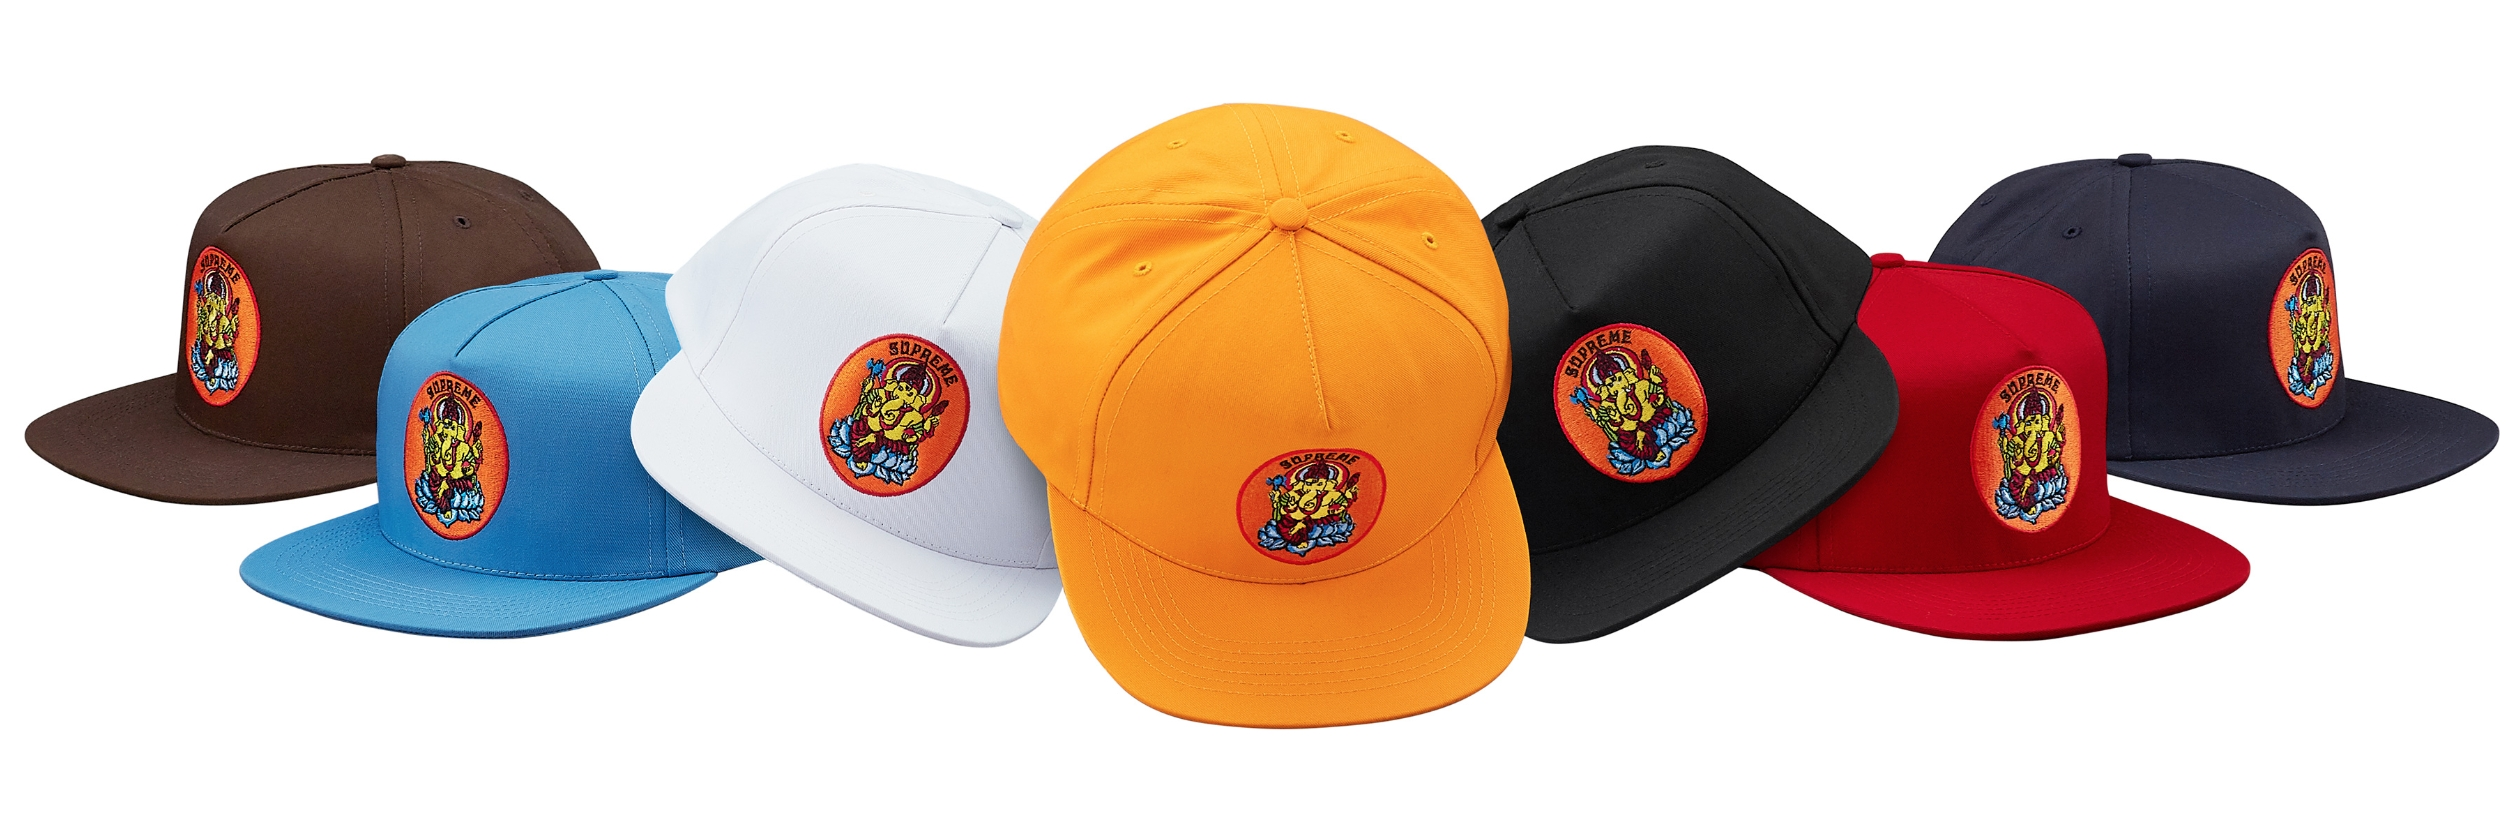 c8146a069 The 50 Best Supreme Hats Of All Time